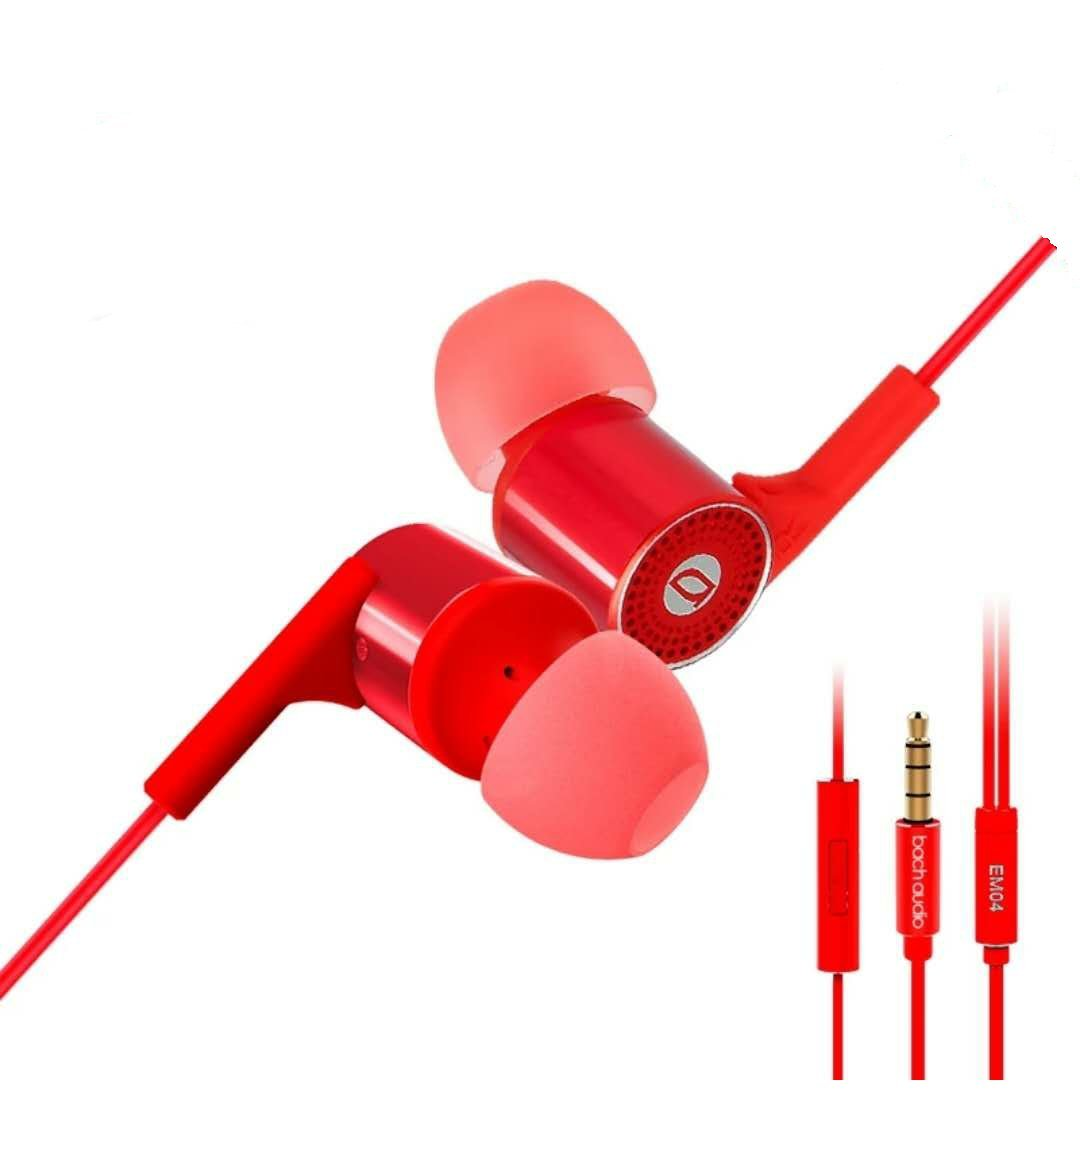 In- Ear Headphones,Bach-Audio-Em06 Earbuds With Mic and 3.5mm Gilded Plug ,Acoustic Noise Cancelling , Deep Bass and Stereo . Compatible with Android, Iphone and Miui HiFi Earbuds, Red.